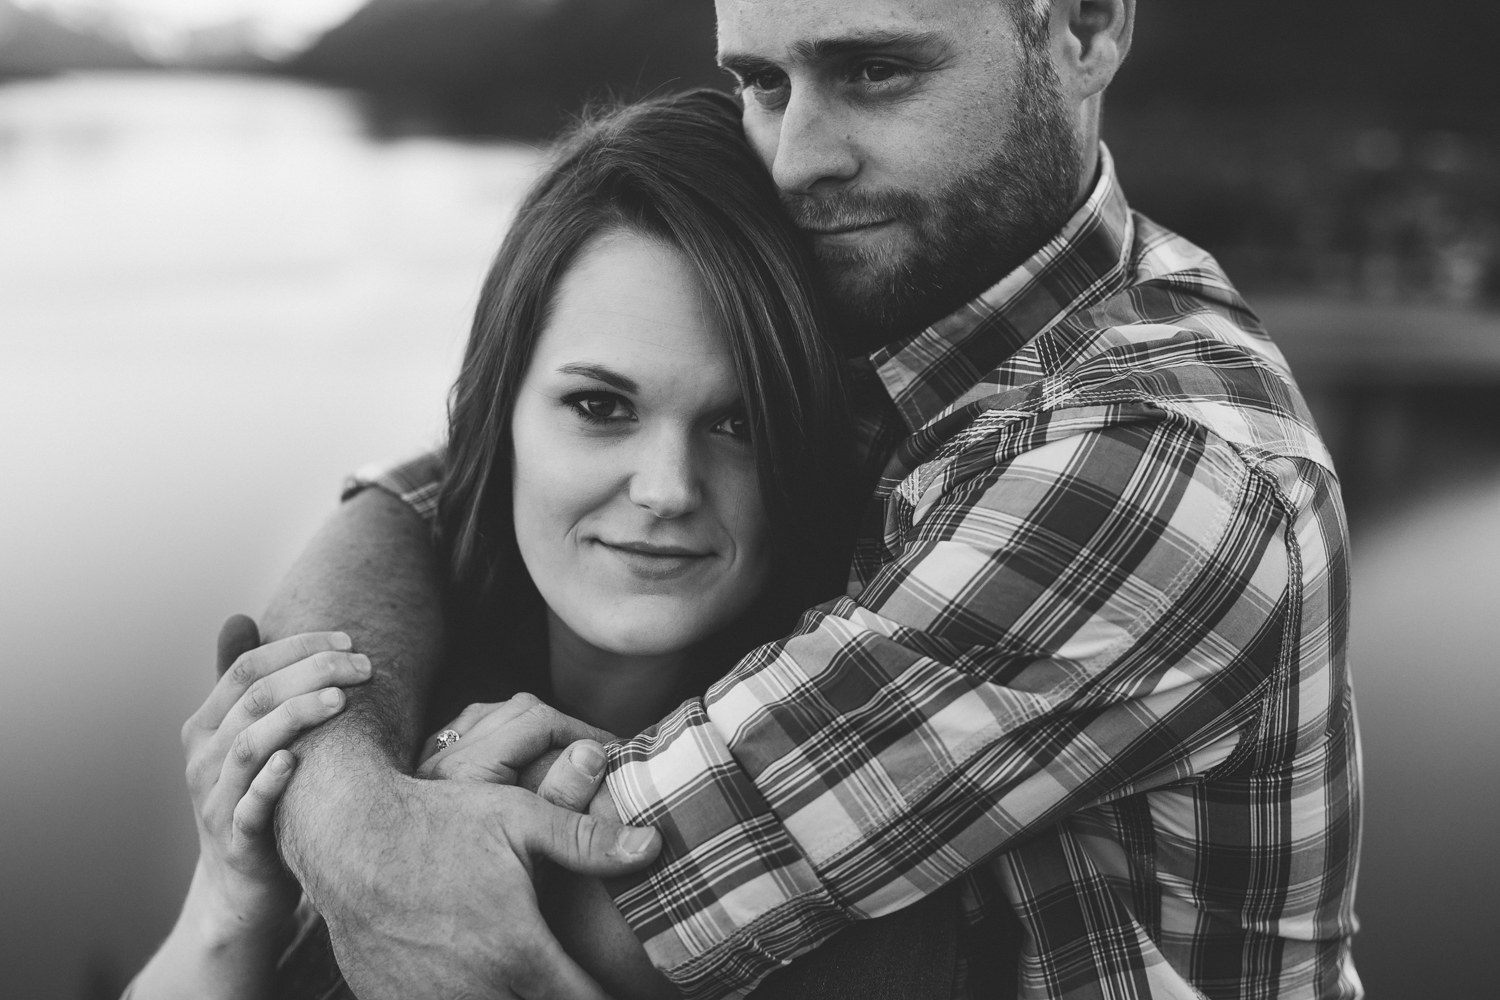 waterton-photographer-love-and-be-loved-photograph-mountain-engagement-luc-megan-picture-iamge-photo-49.jpg